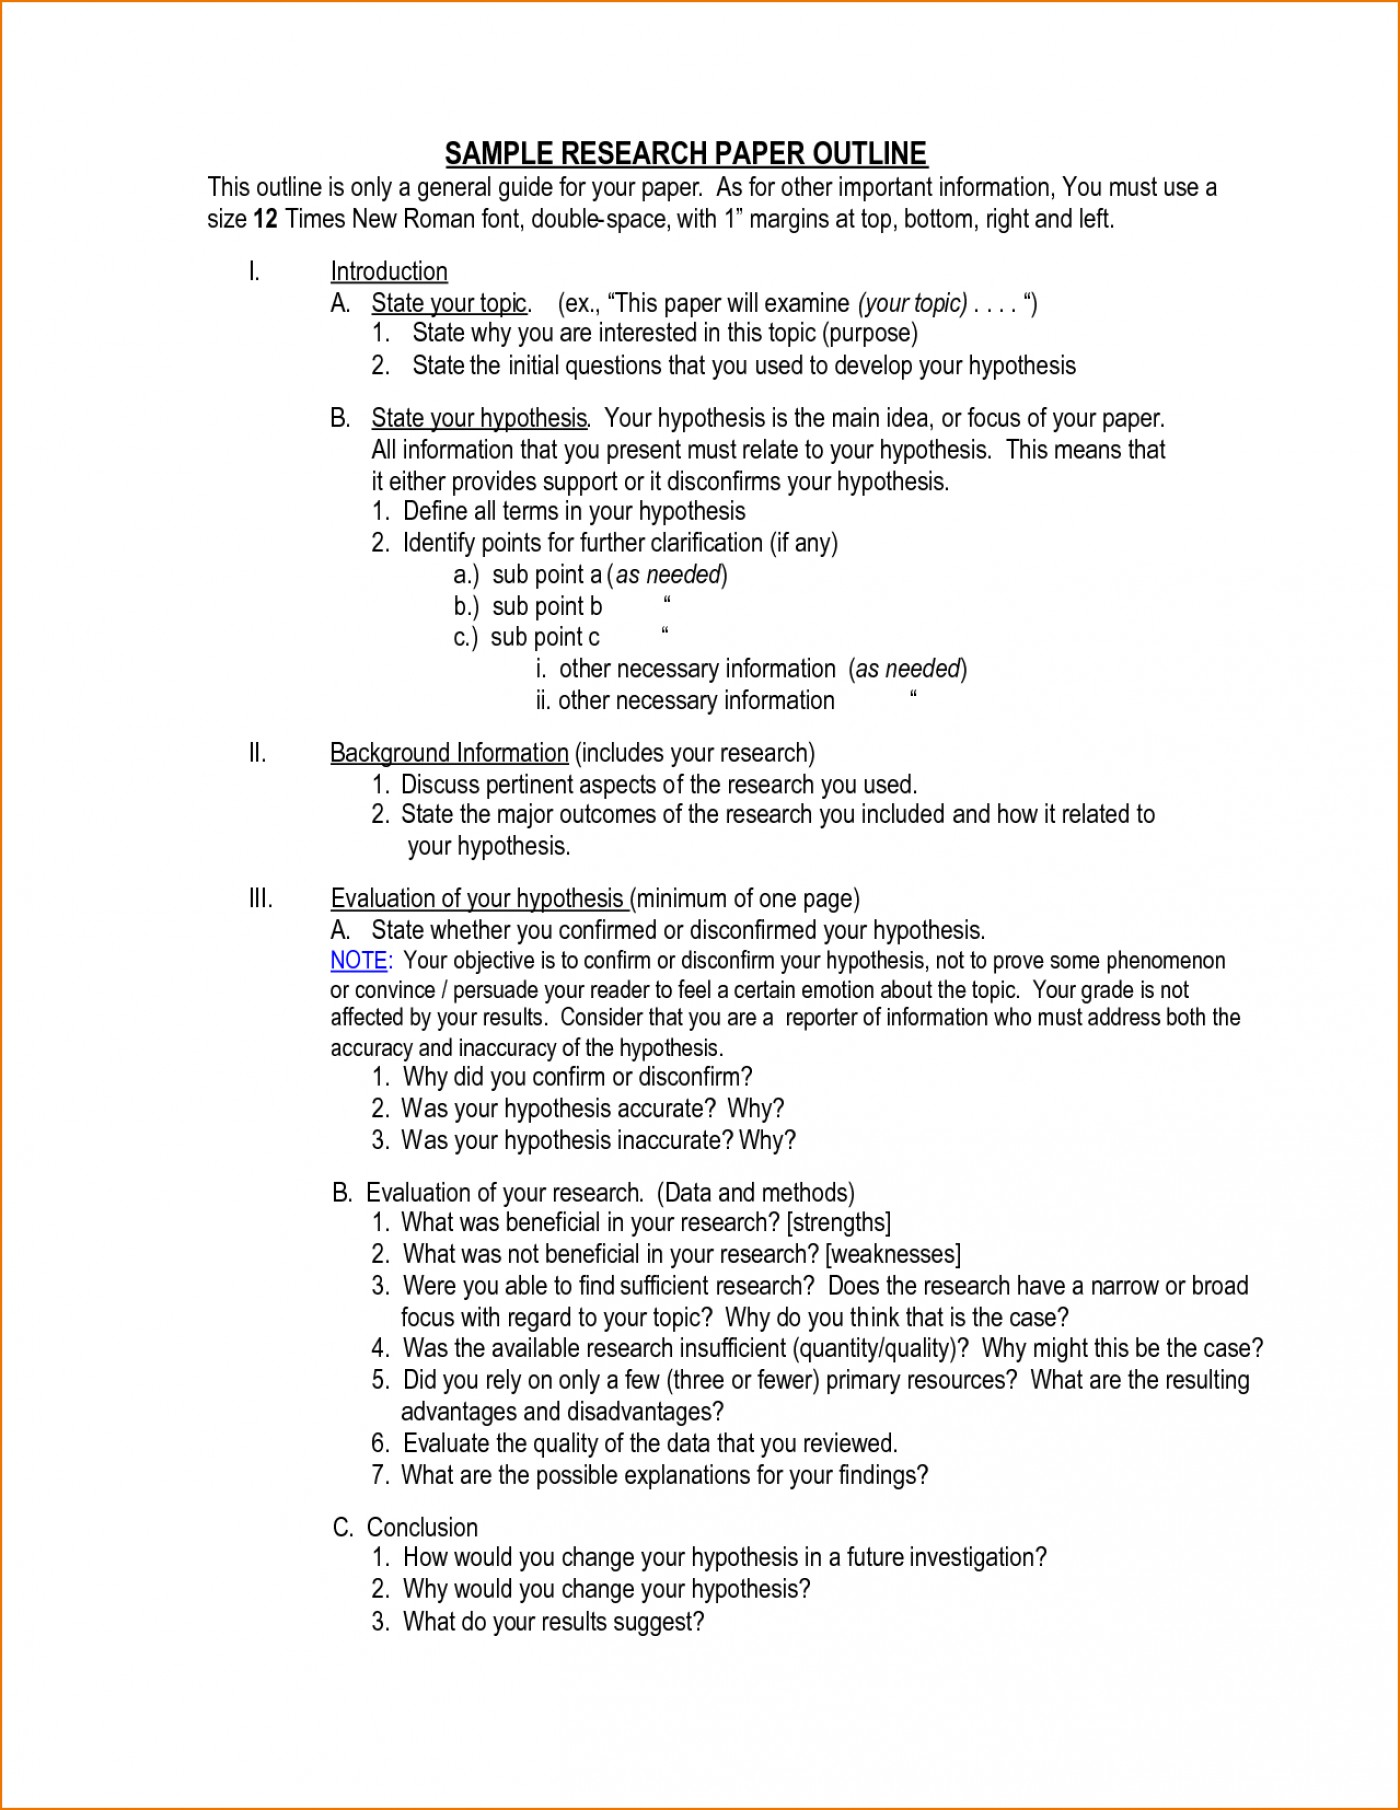 012 Research Paper Outline Template For Outlines Top A On Bullying Sample Apa Format 1400